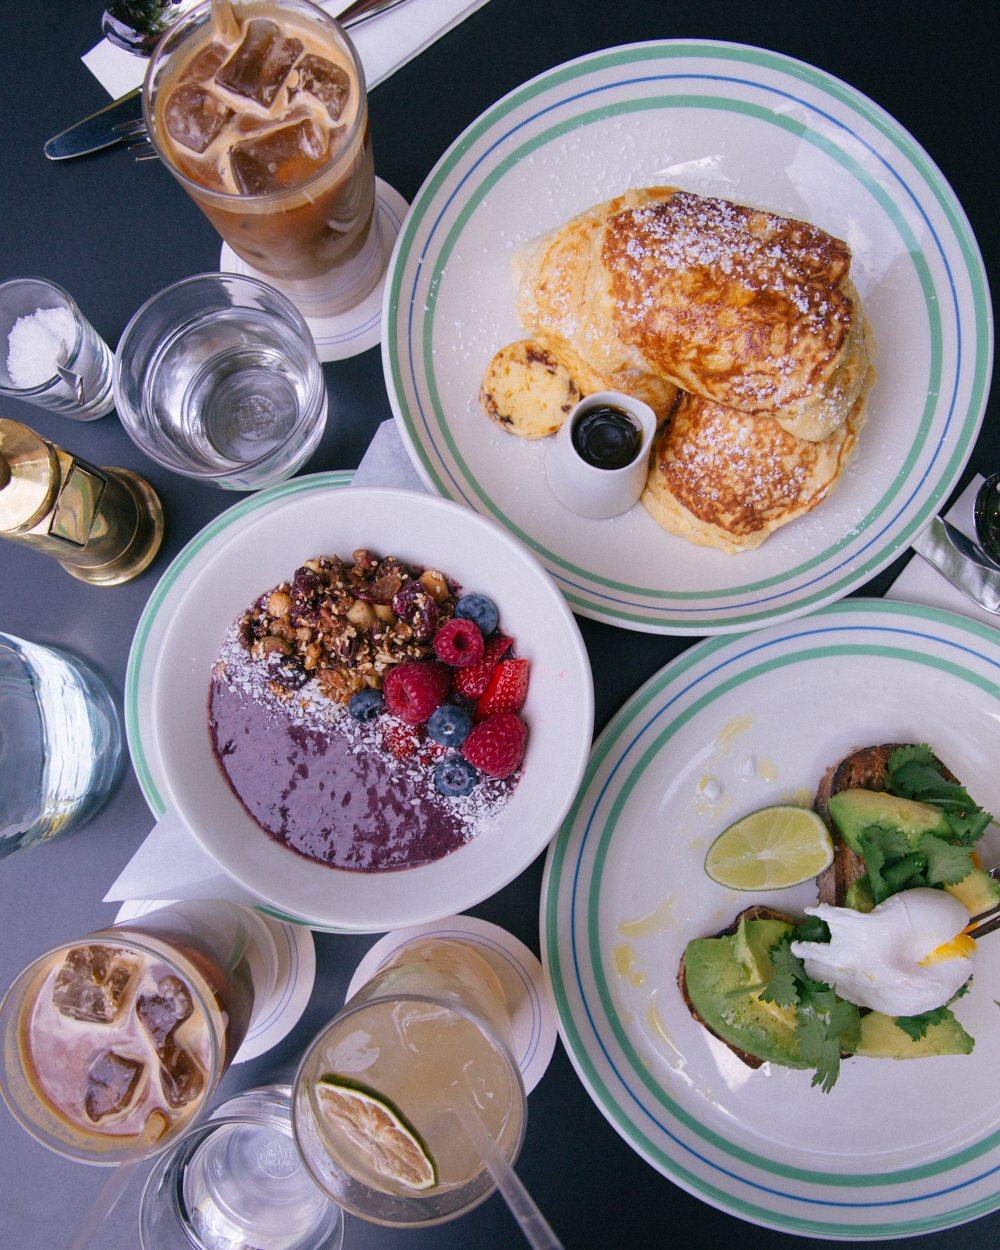 Best brunch in Chelsea